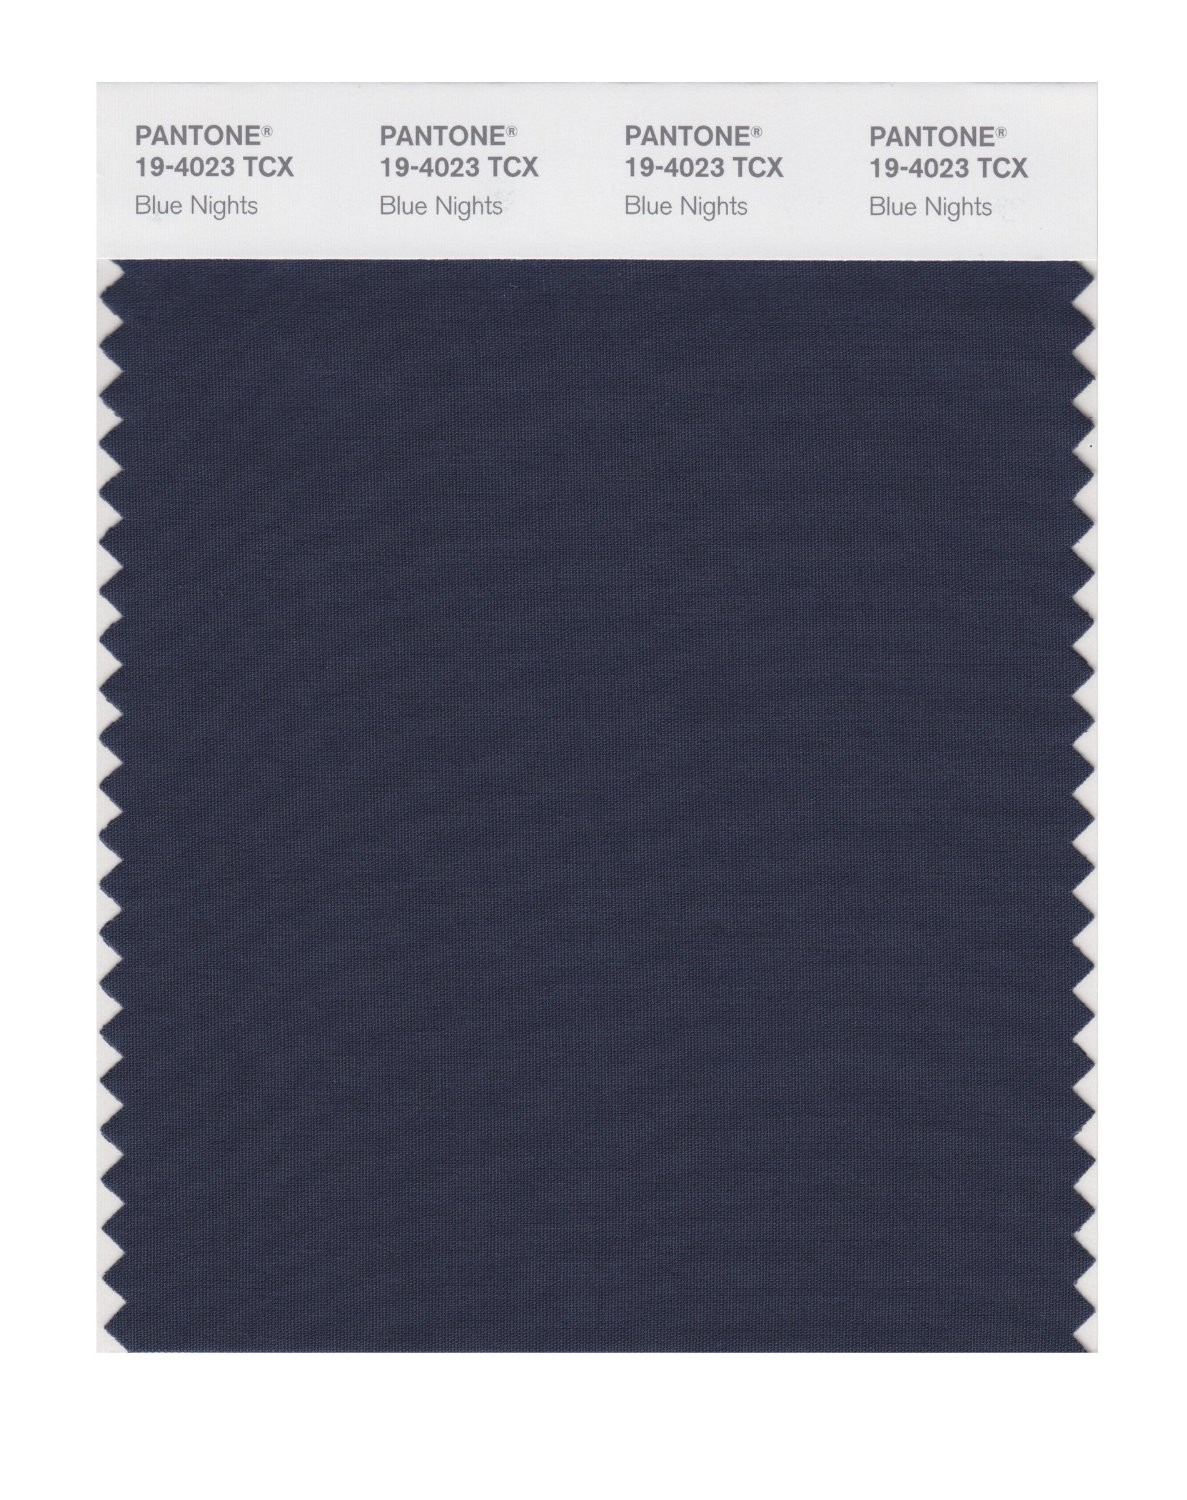 Pantone 19-4023 TCX Swatch Card Blue Nights